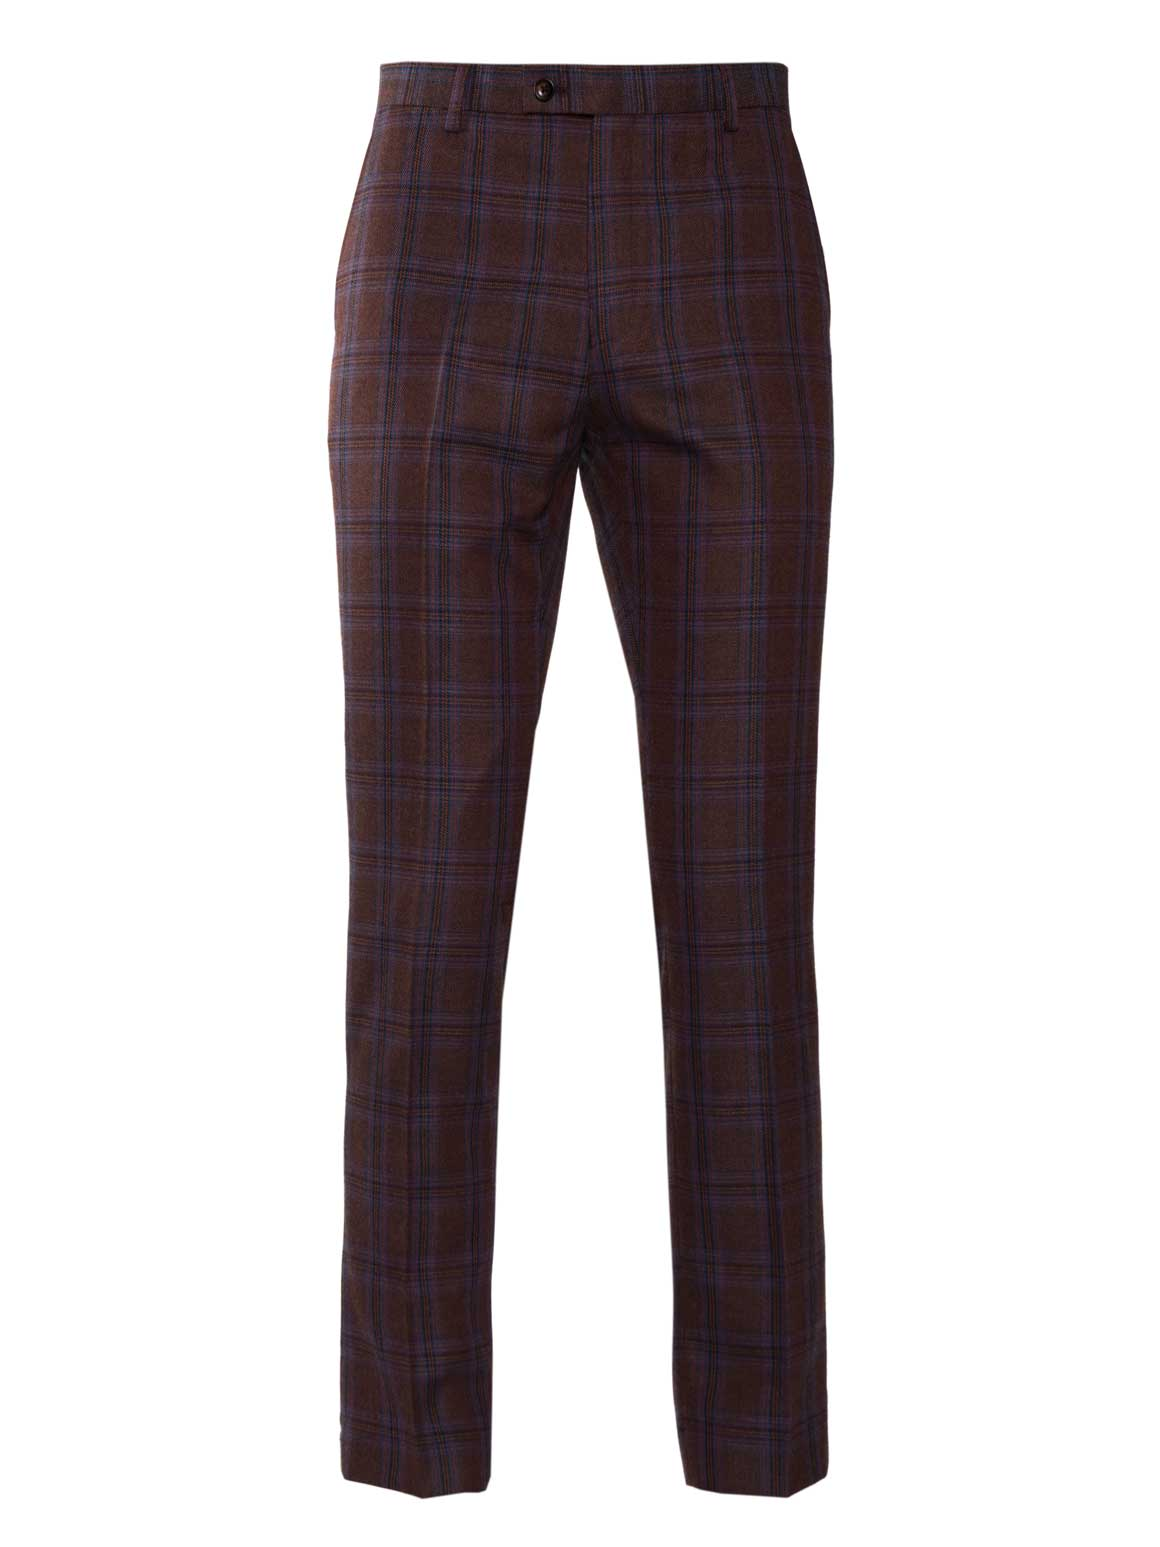 Downing Pant - Brown & Red Check